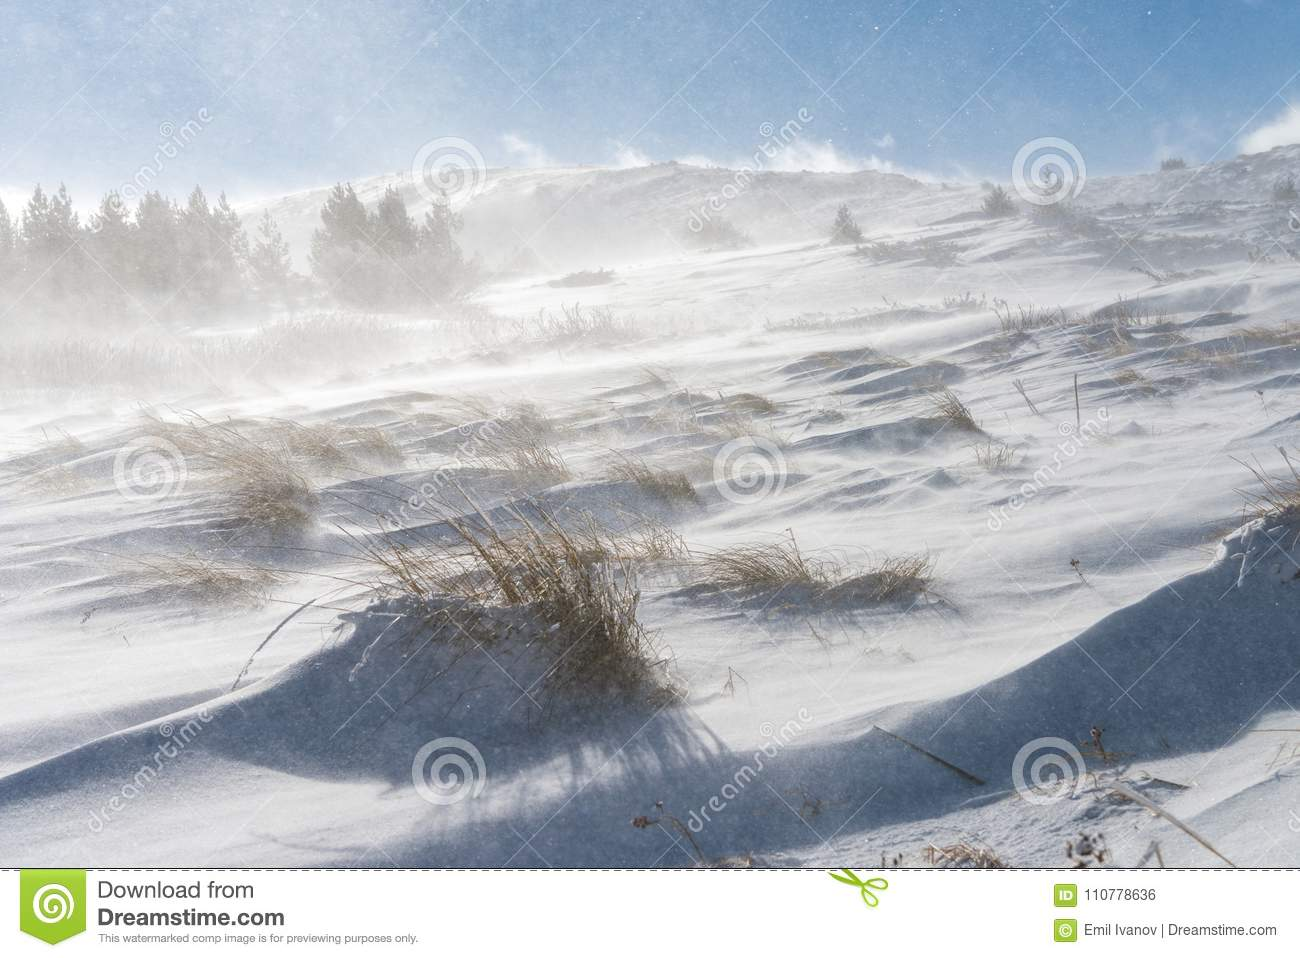 Snow and strong winds cause blizzard conditions on mountains